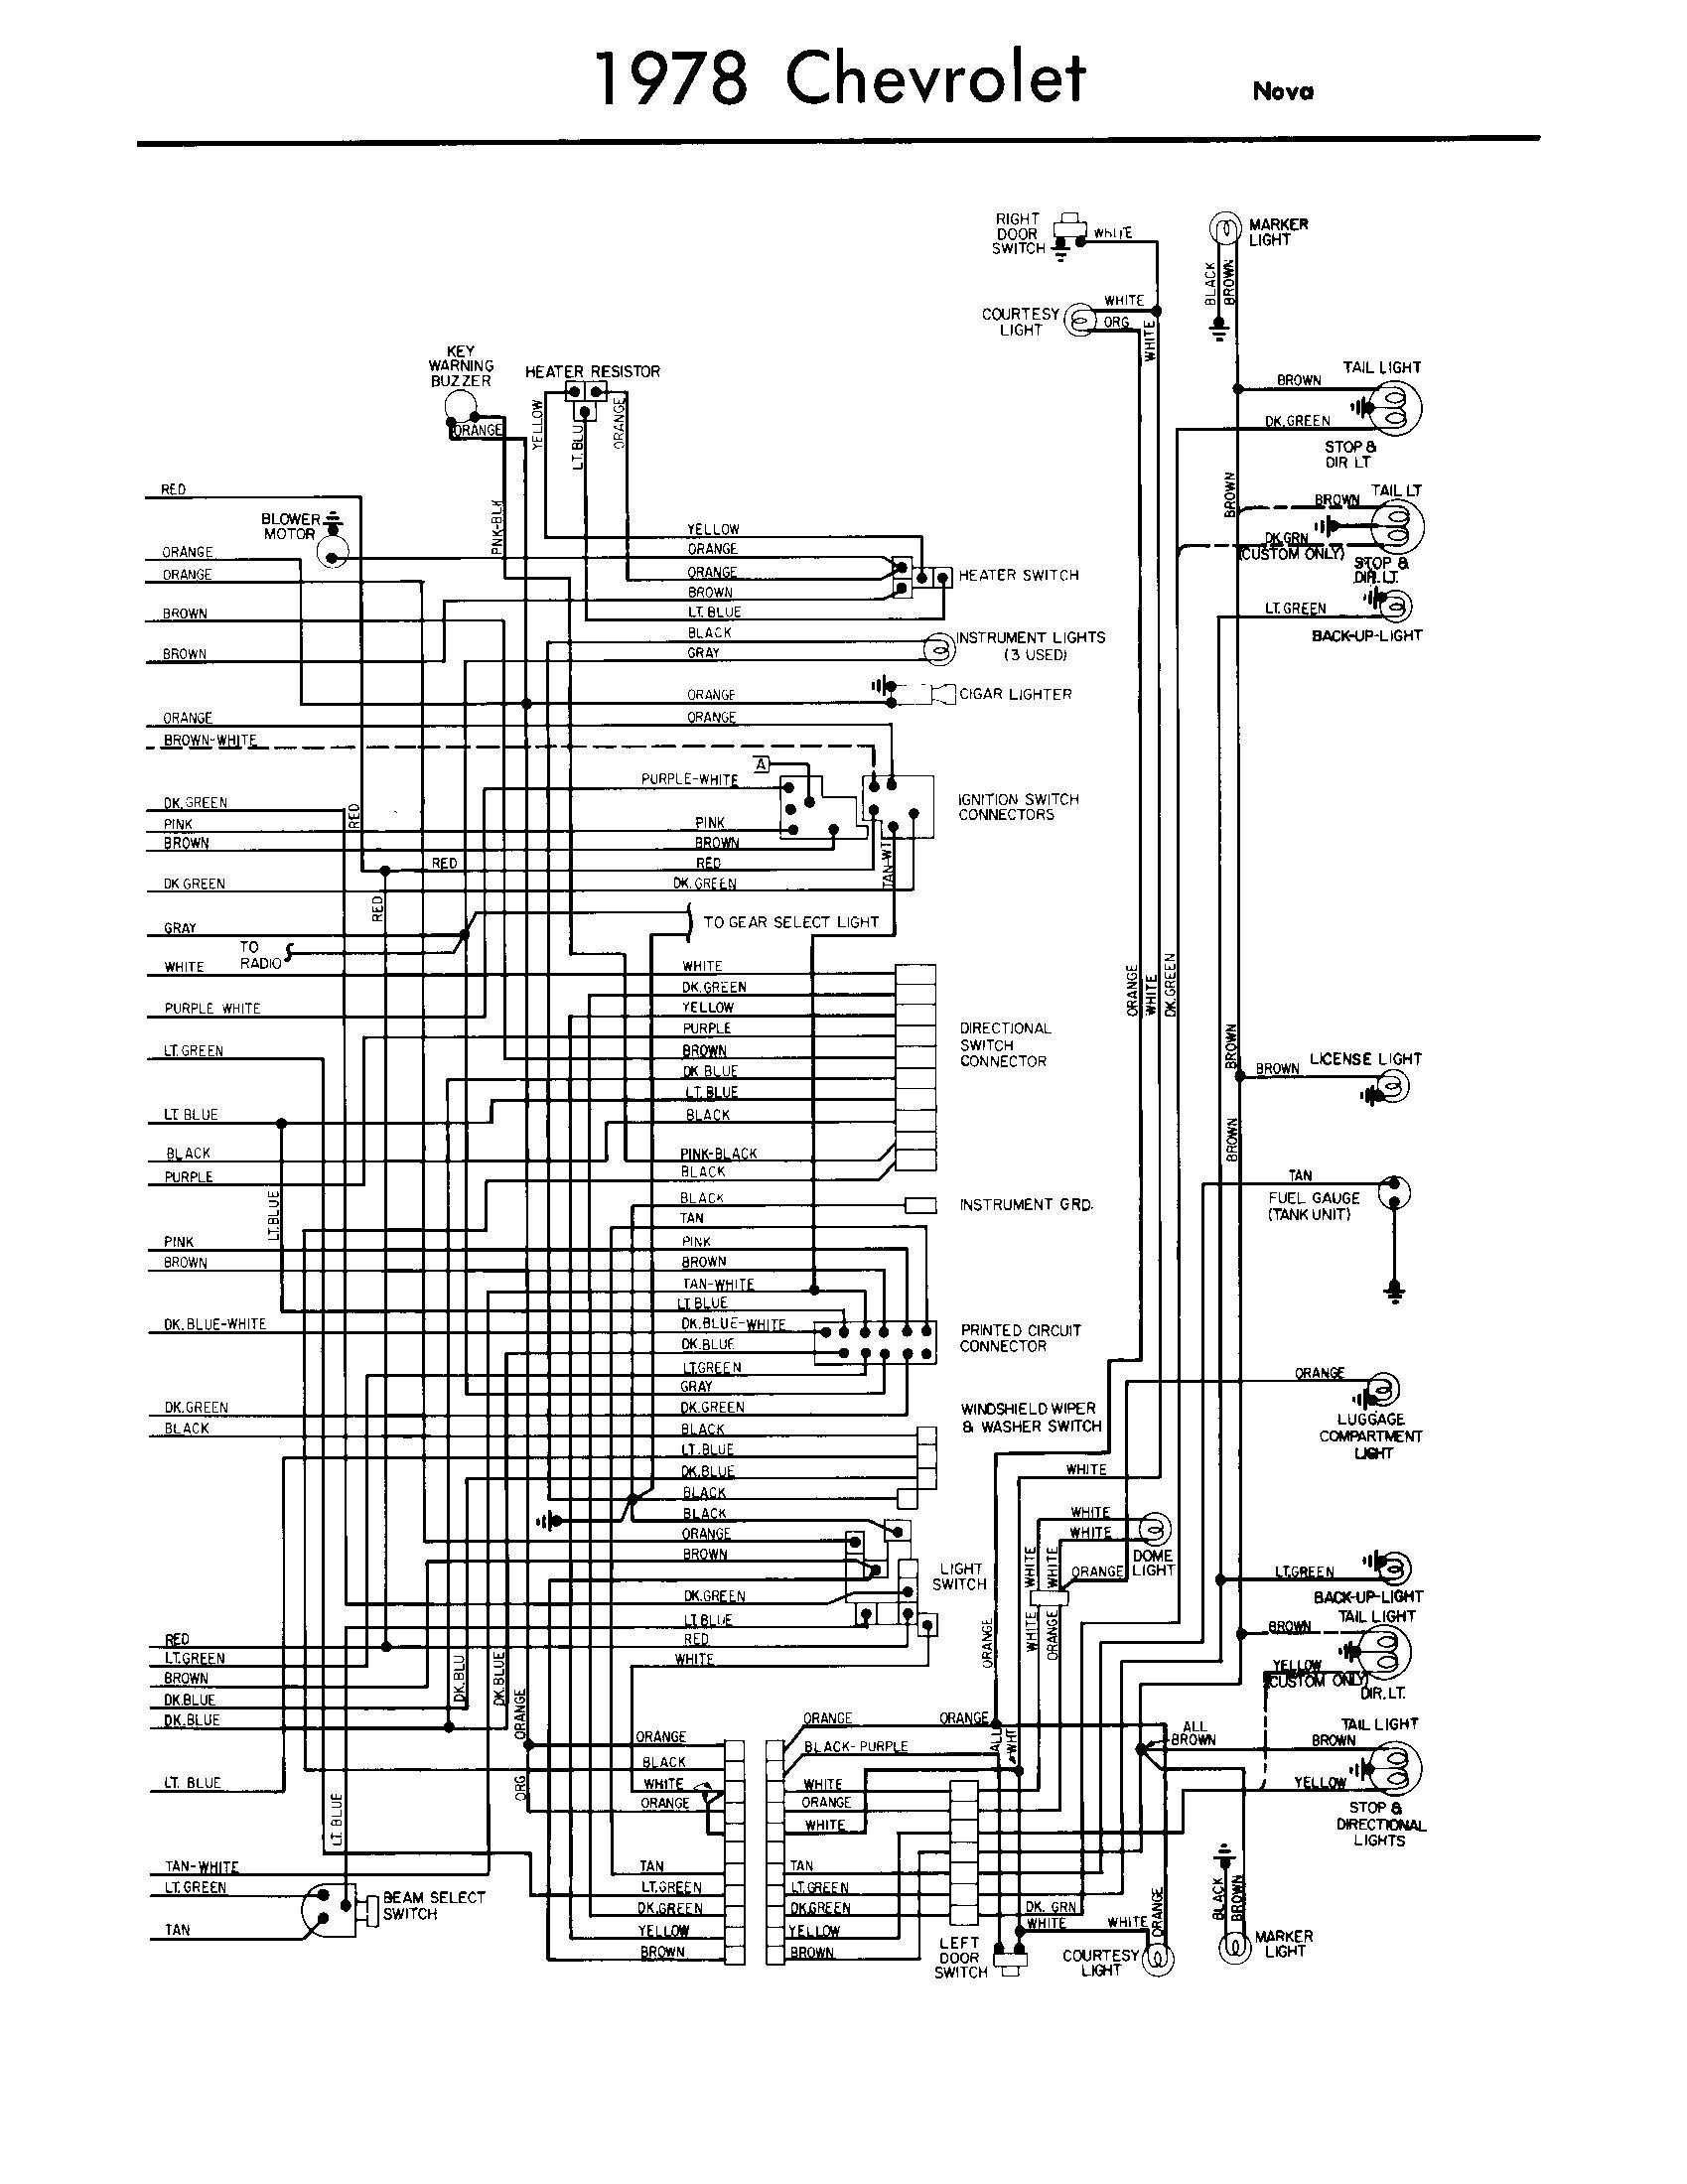 1971 Chevy C20 Wiring Diagram Free Download Wiring Diagram Schematic ...